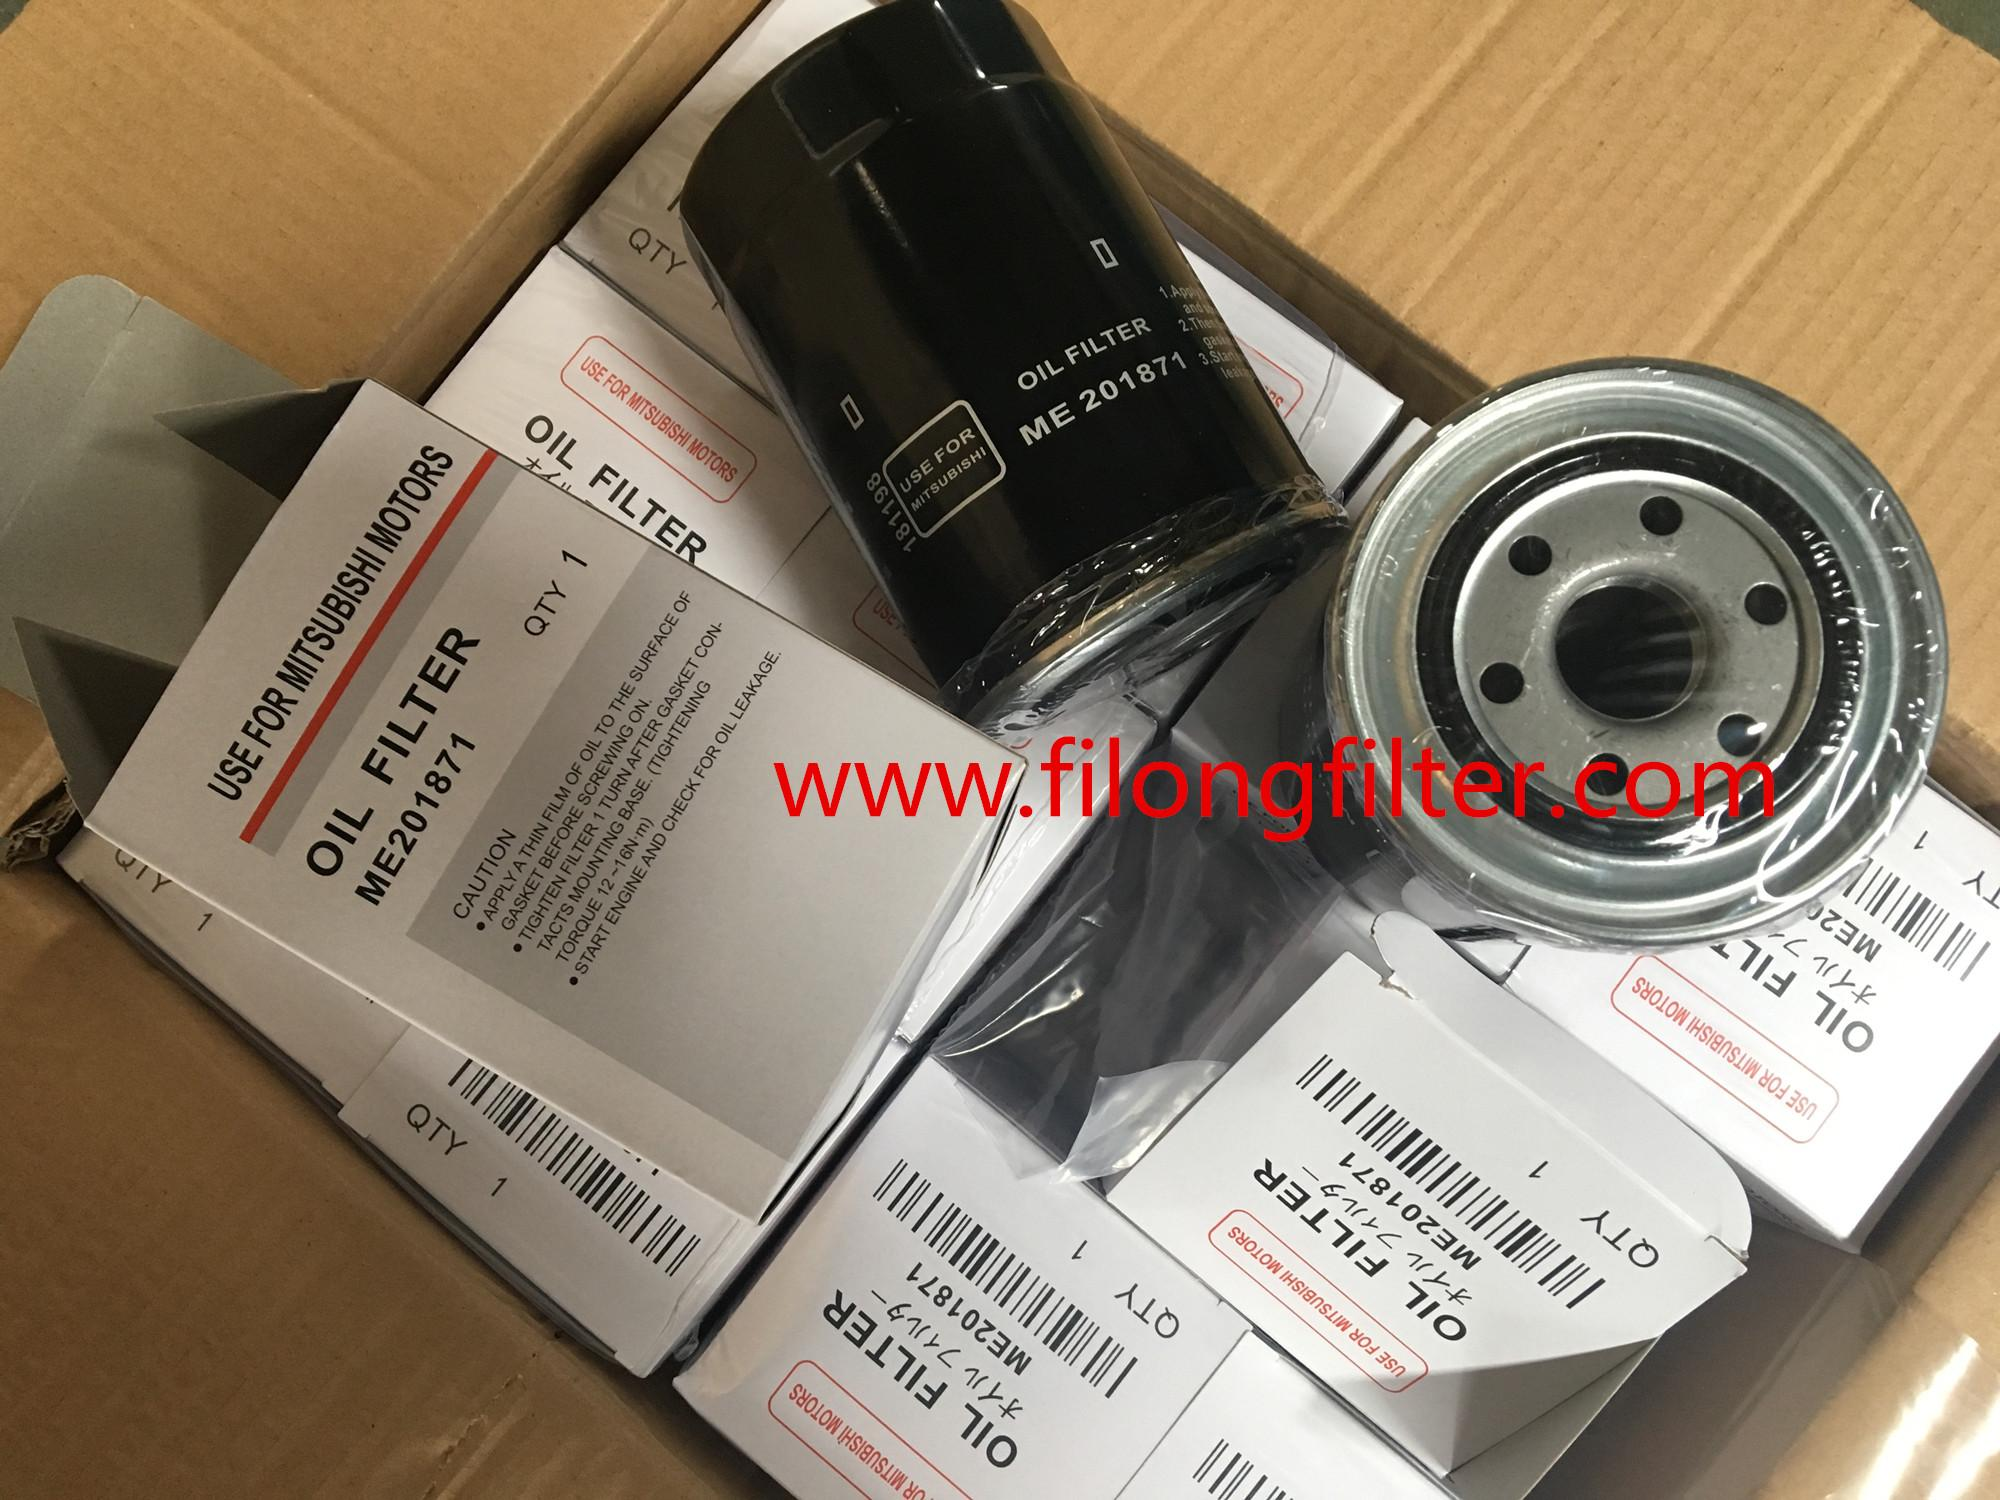 FILONG Manufactory For Mitsubishi Oil filter 1230A046, ME013307, ME013307V, ME013343, ME202472, ME215002,ME201871 PH5529, PH5586  H96W03 WP1045  OC297 LS911 SK810